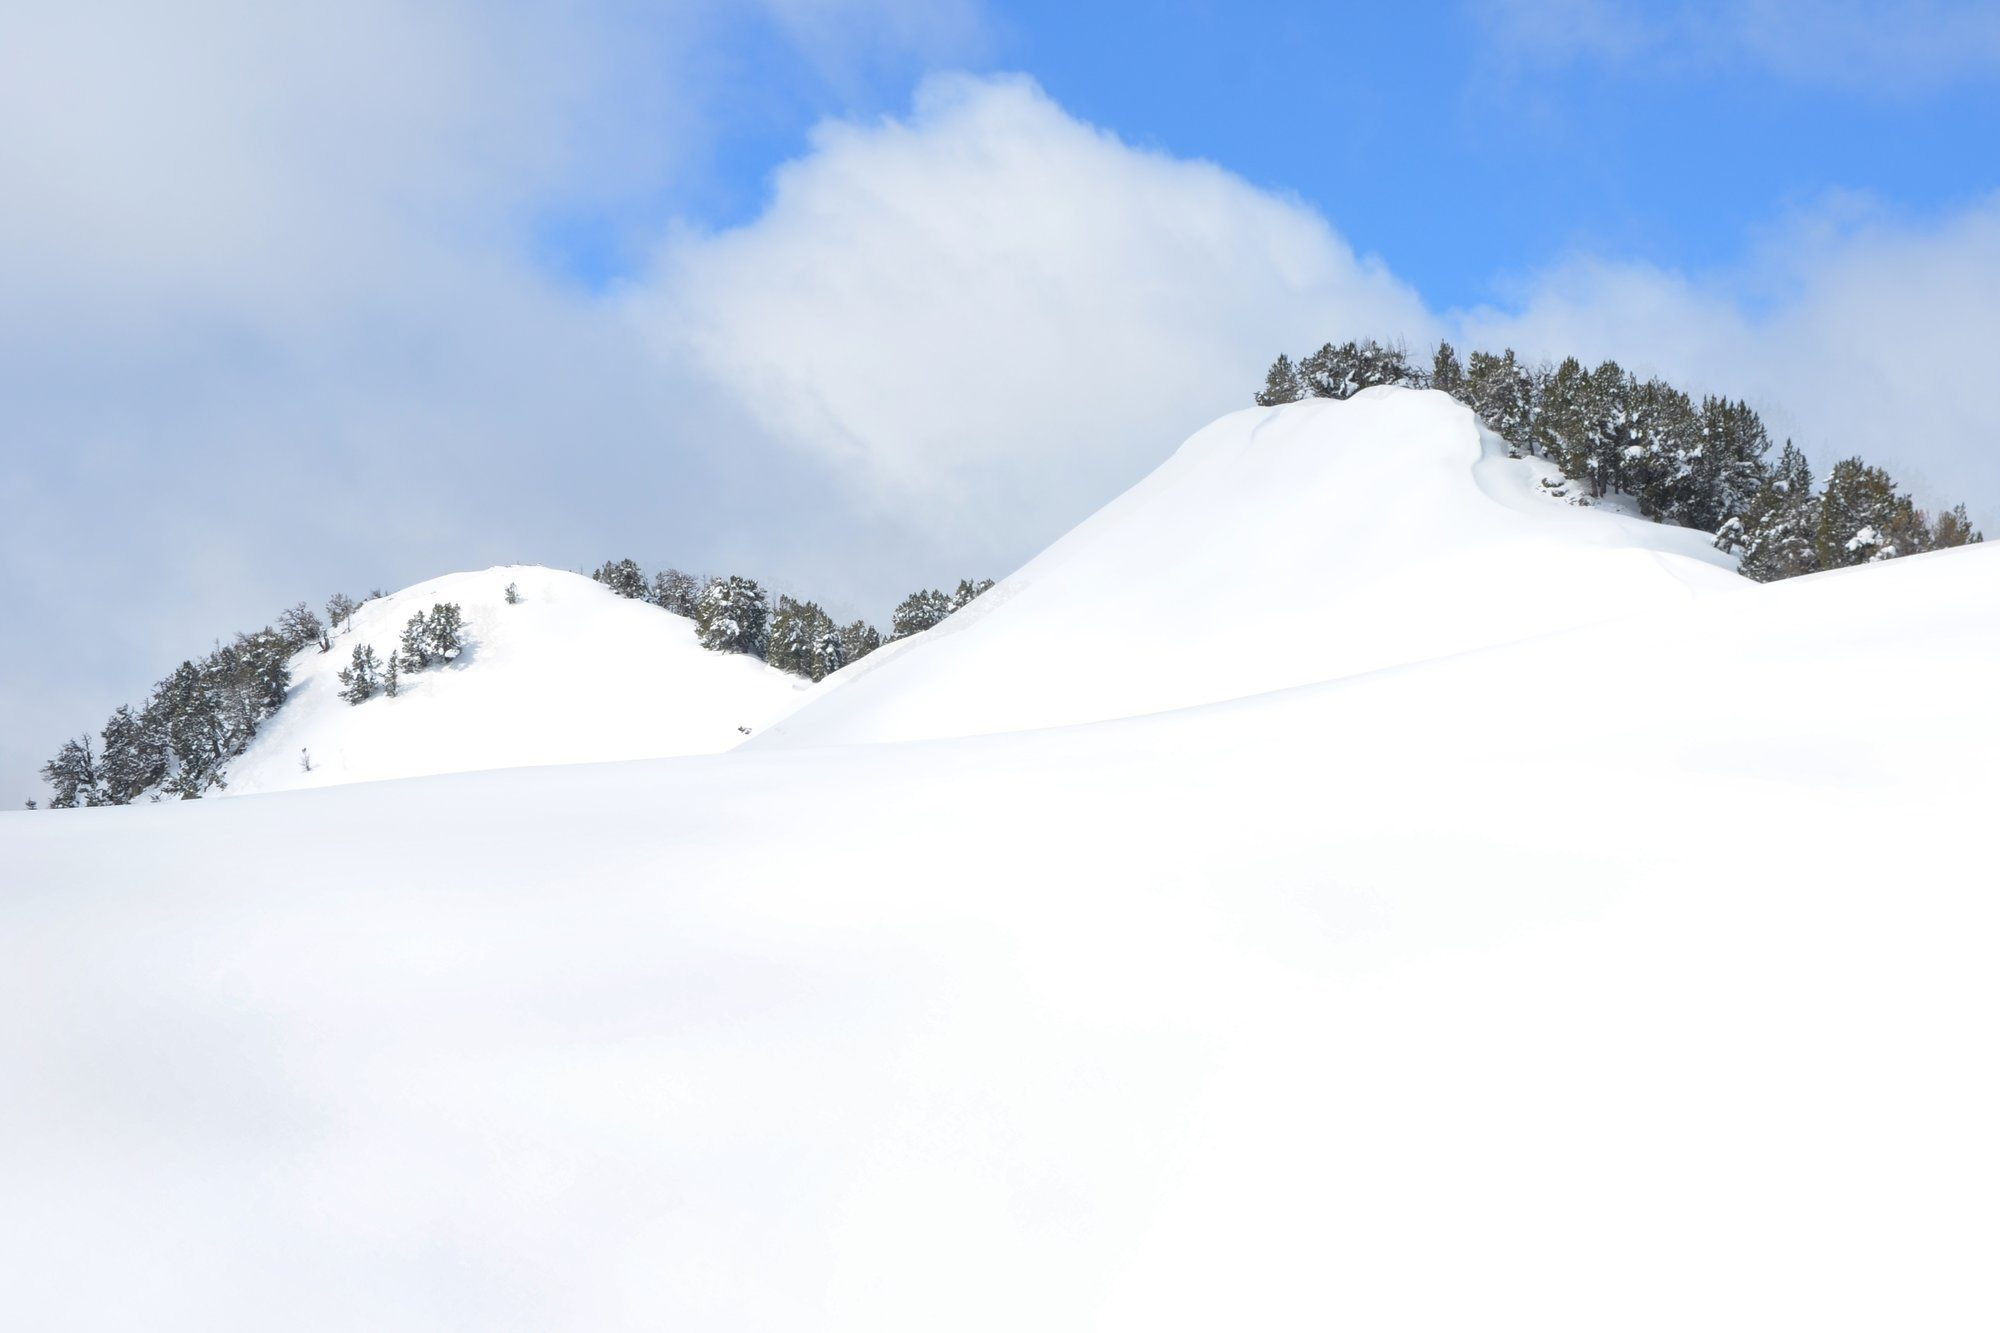 When's The Best Time to Get a Powder Ski Fix in Niseko?